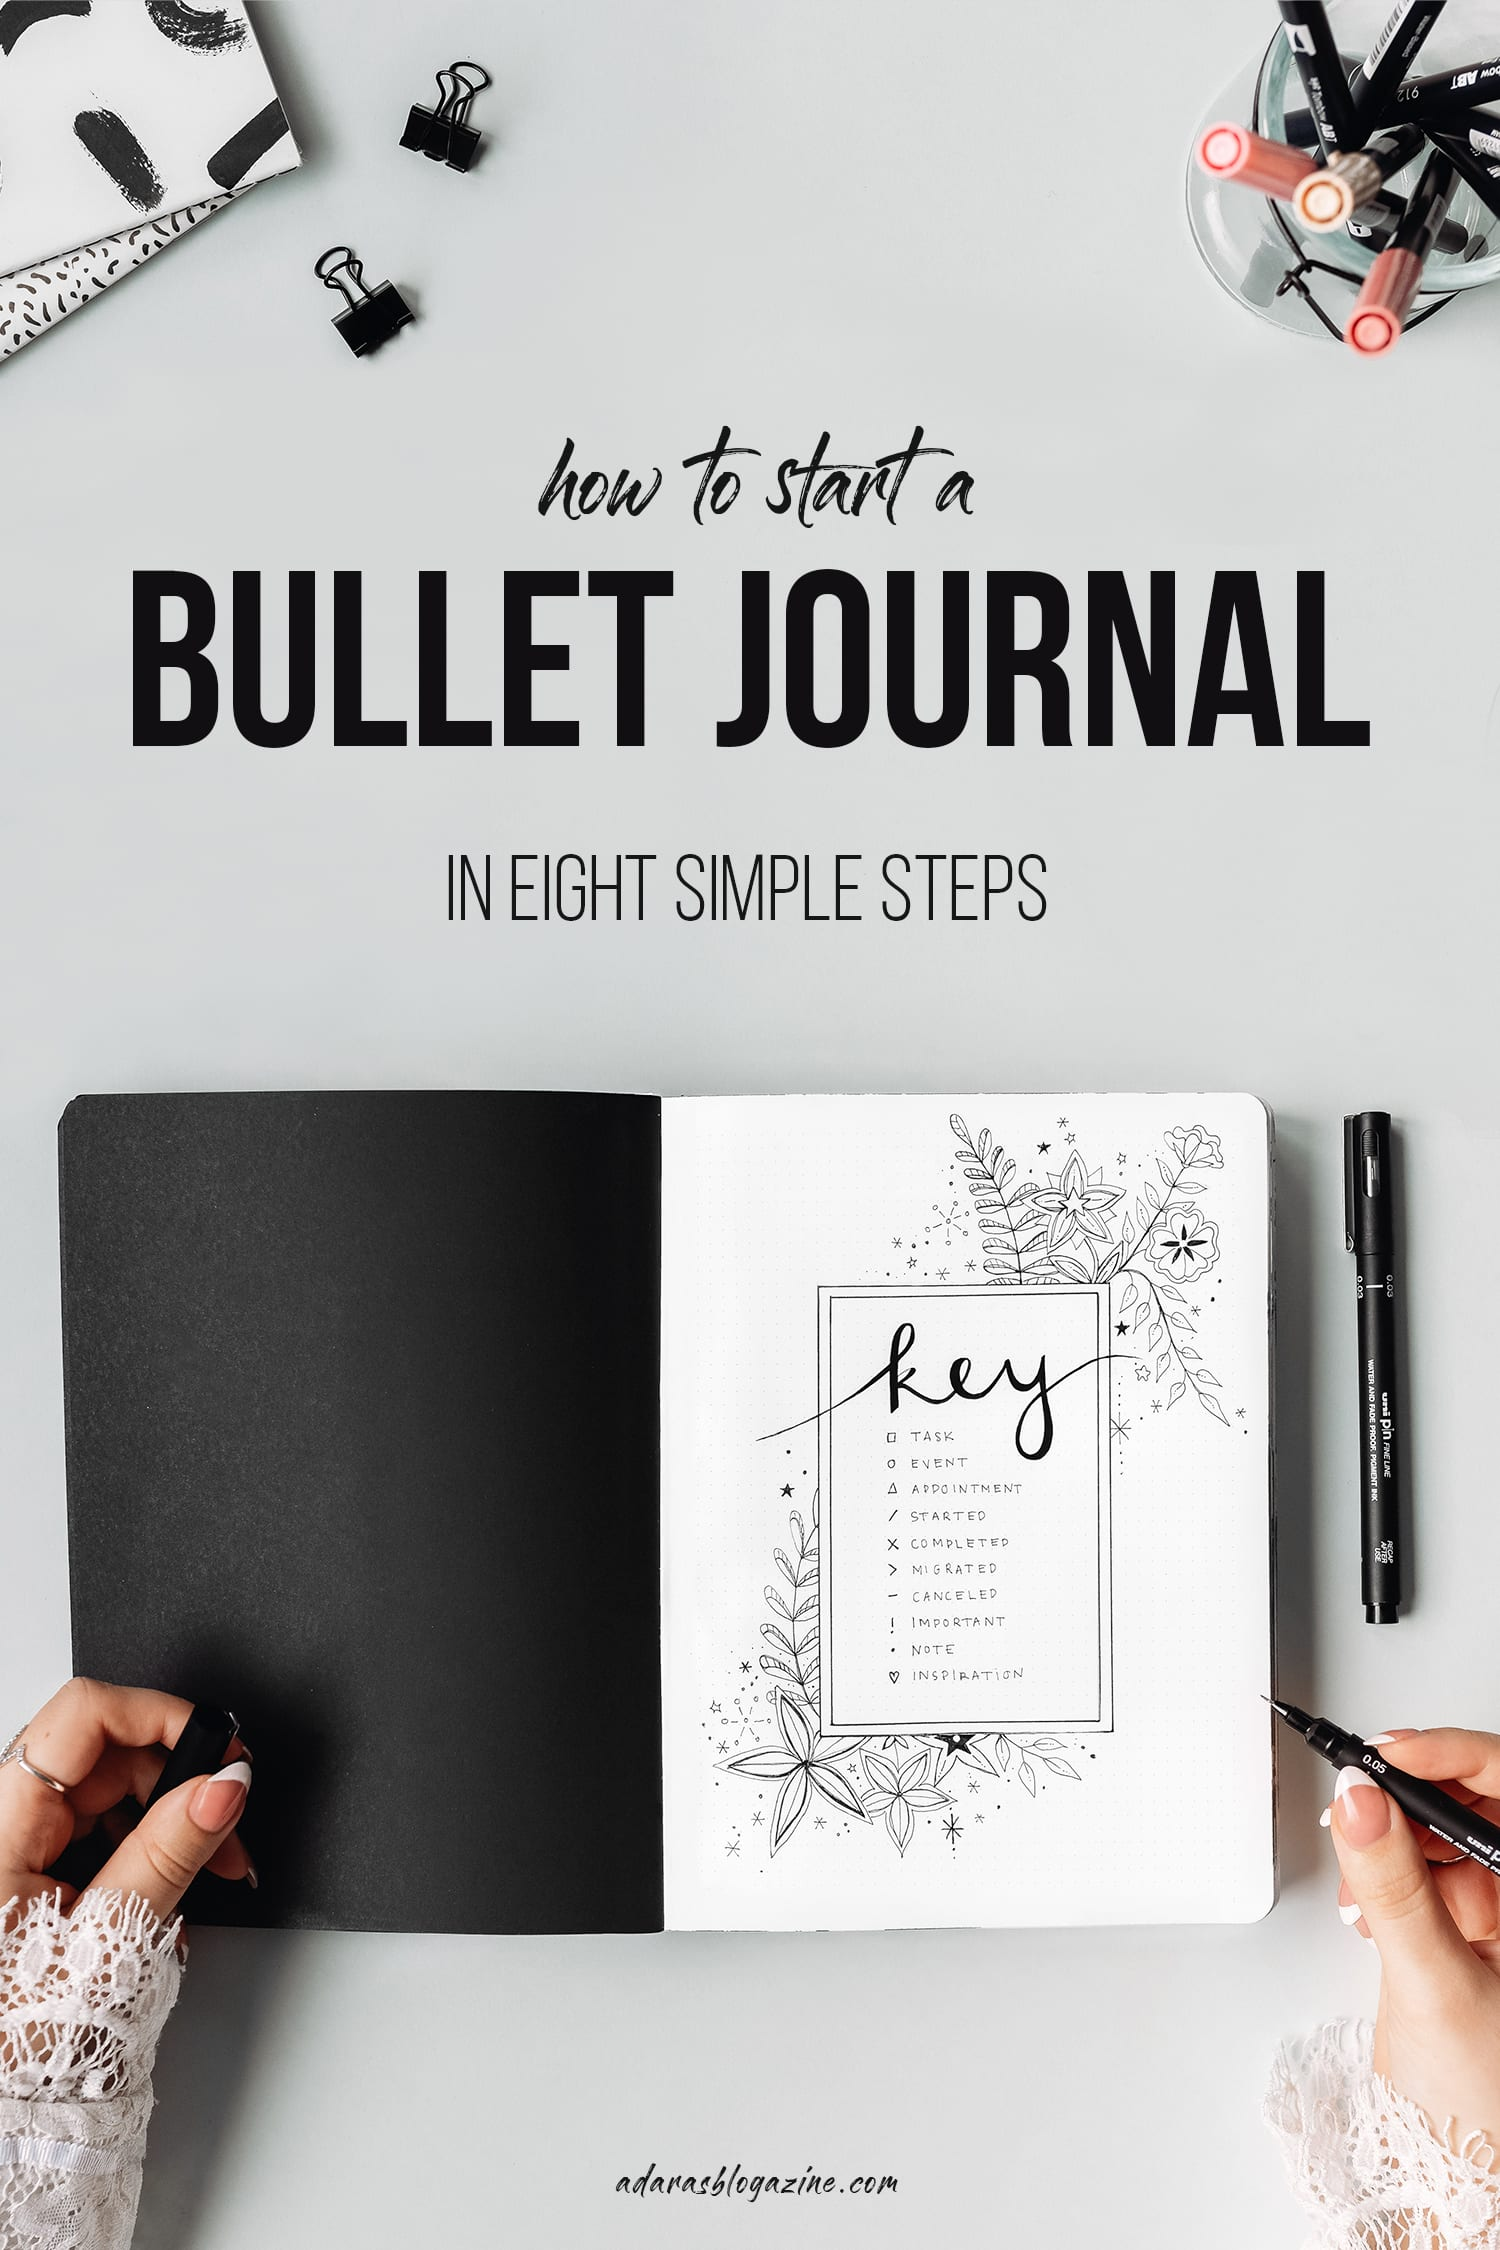 How to Start a Bullet Journal - in 8 Easy Steps